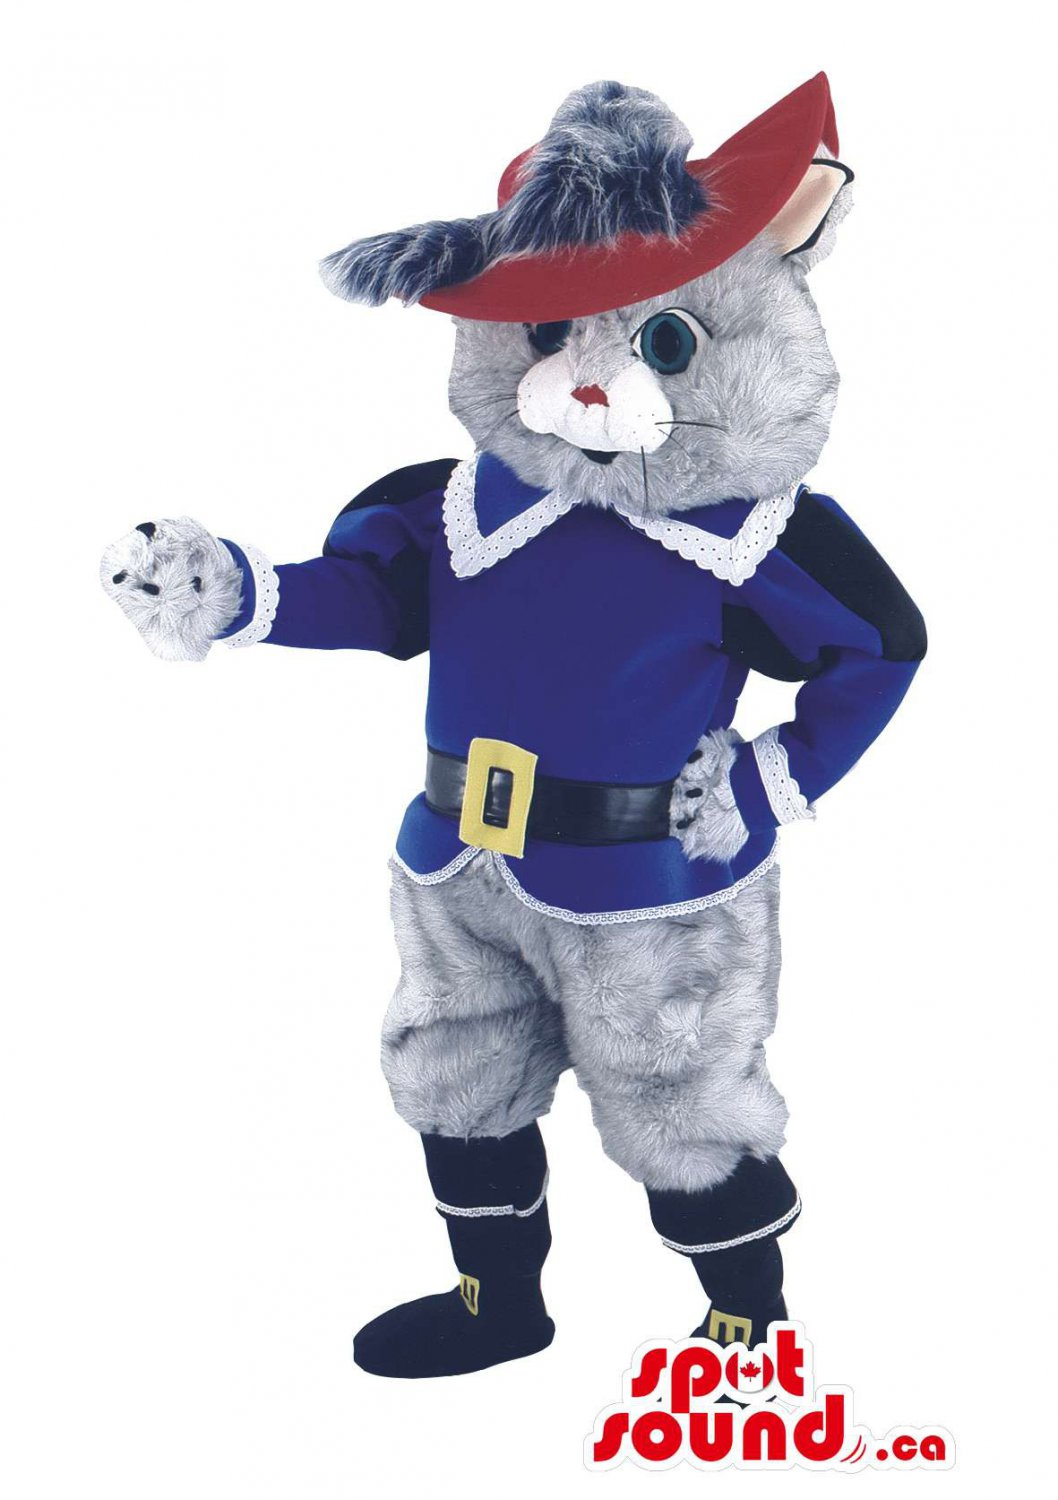 Cat In Boots Mascot SpotSound Canada Children'S Story Character With Red Hat